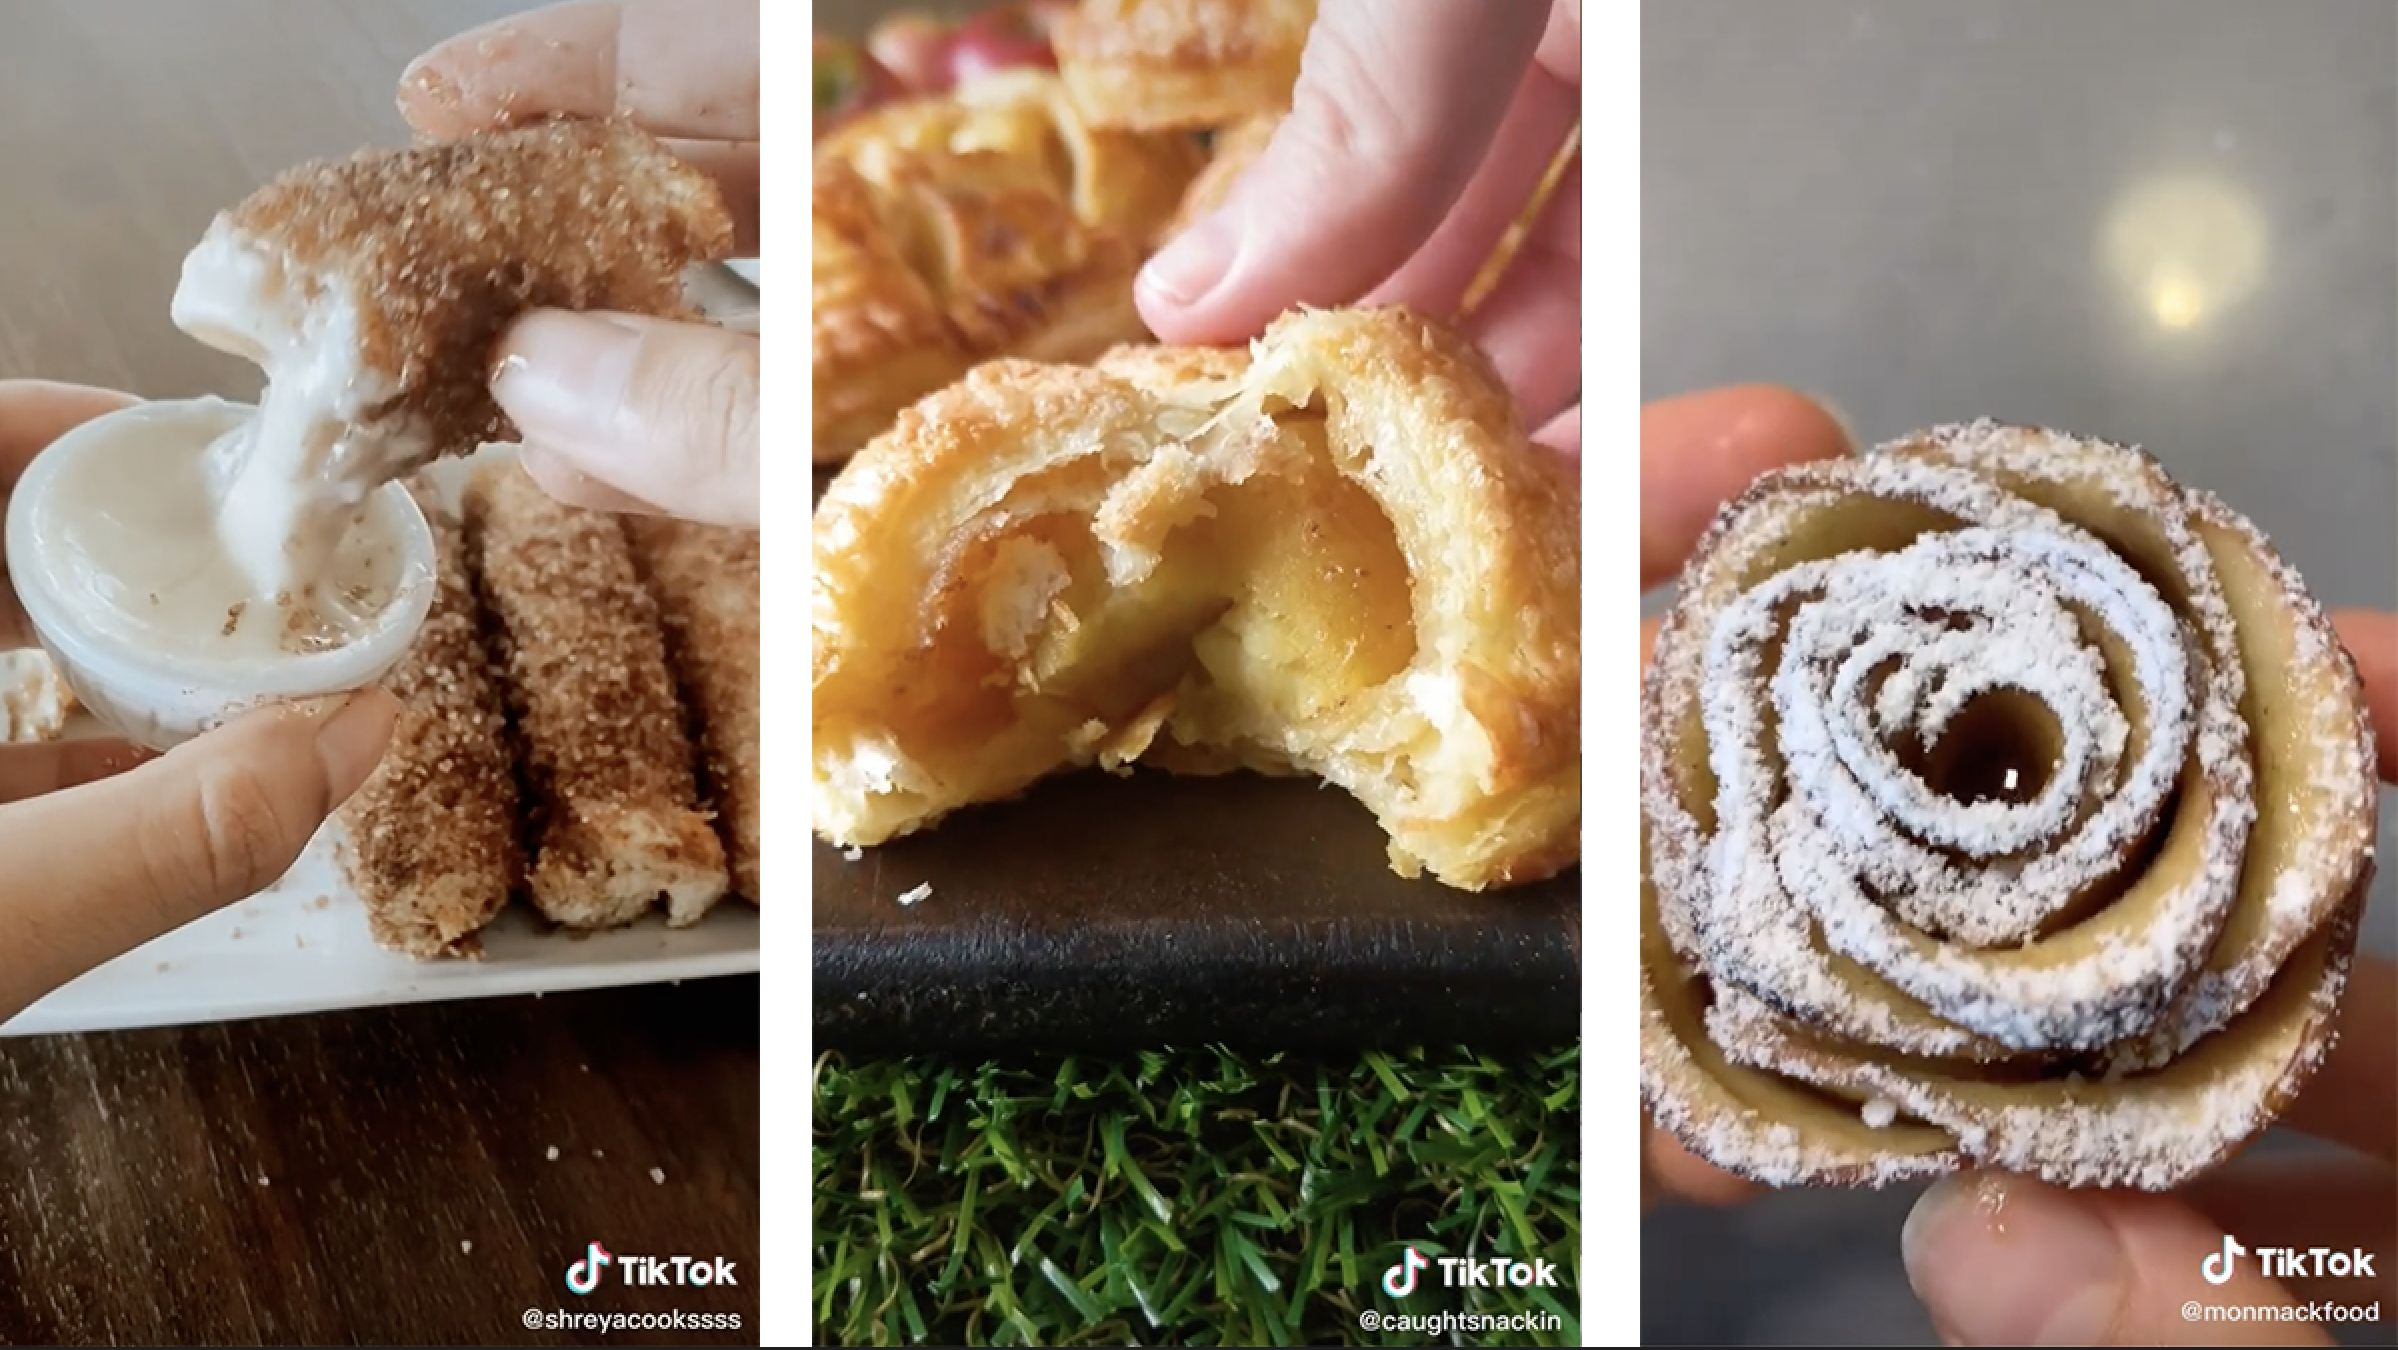 5 deliciously awesome twists on classic apple pie